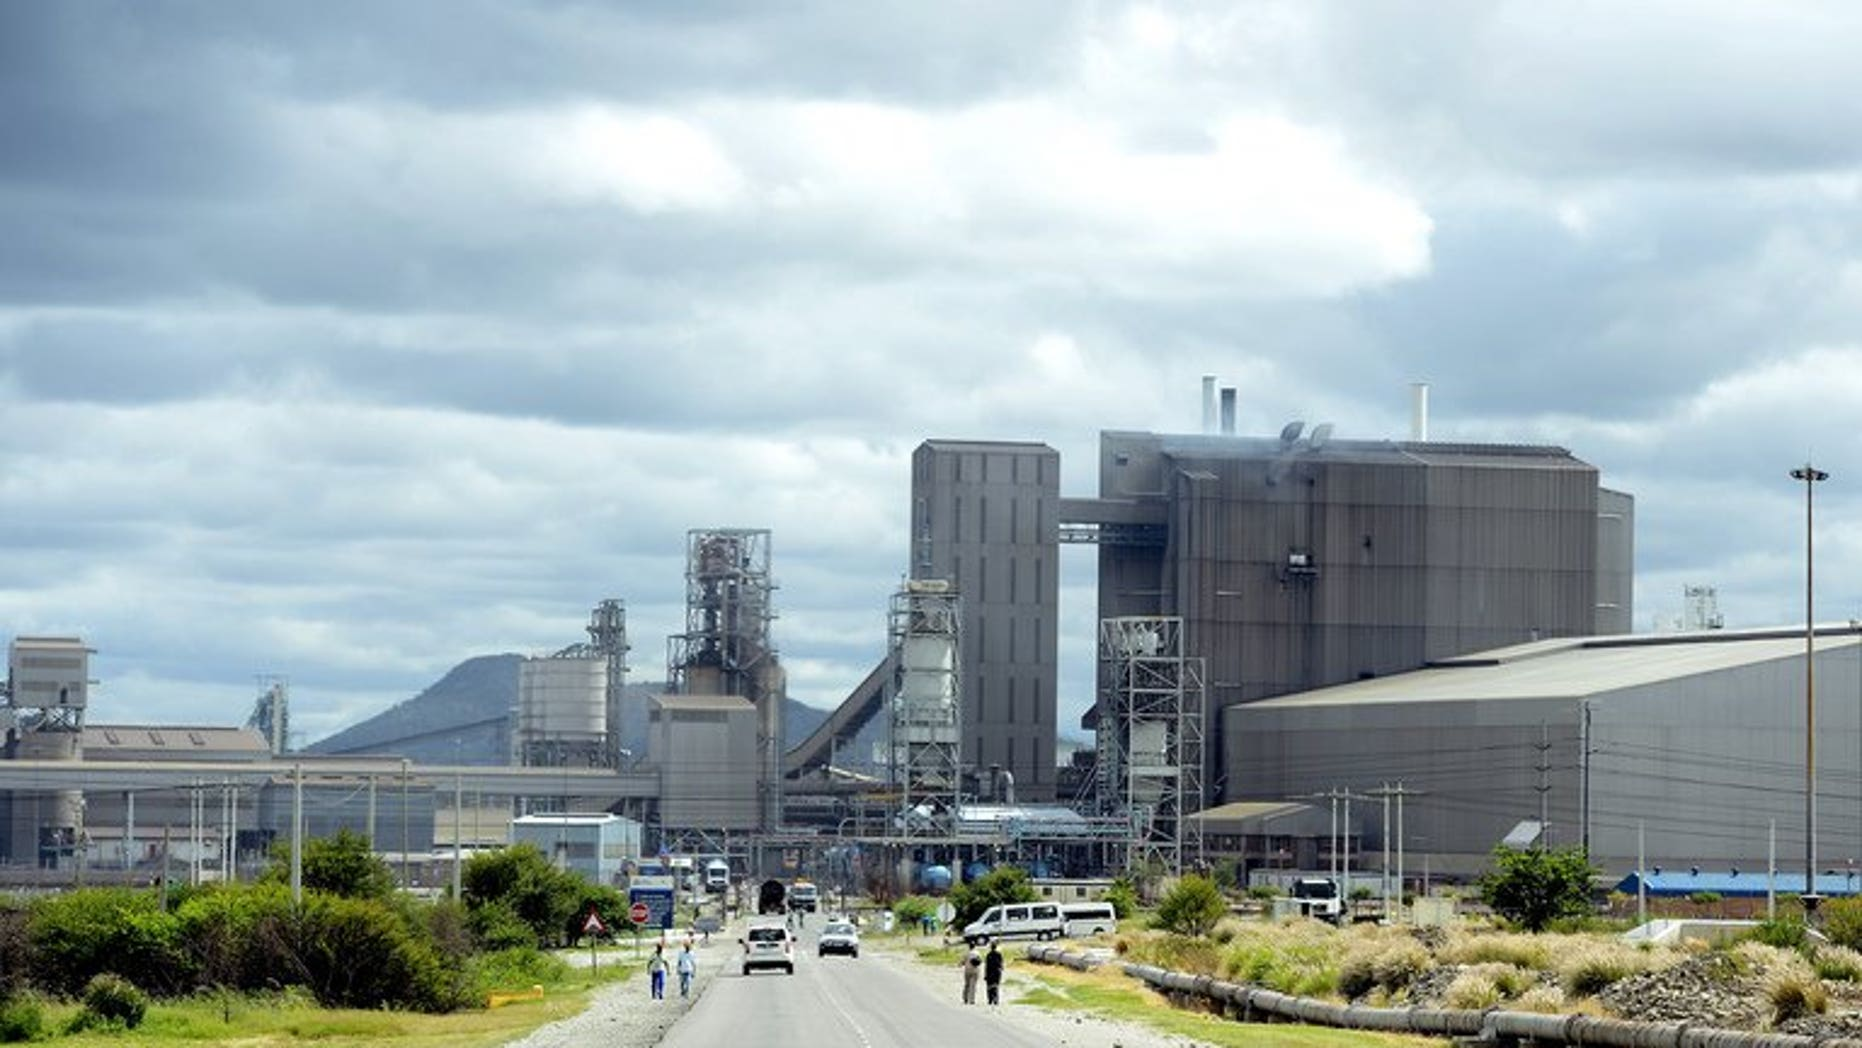 Anglo American Platinum mine in Rustenburg, northwest of Johannesburg, pictured on January 16, 2013. Thousands of workers at the world's top platinum producer have returned to work after a brief wildcat strike, the company said on Tuesday.